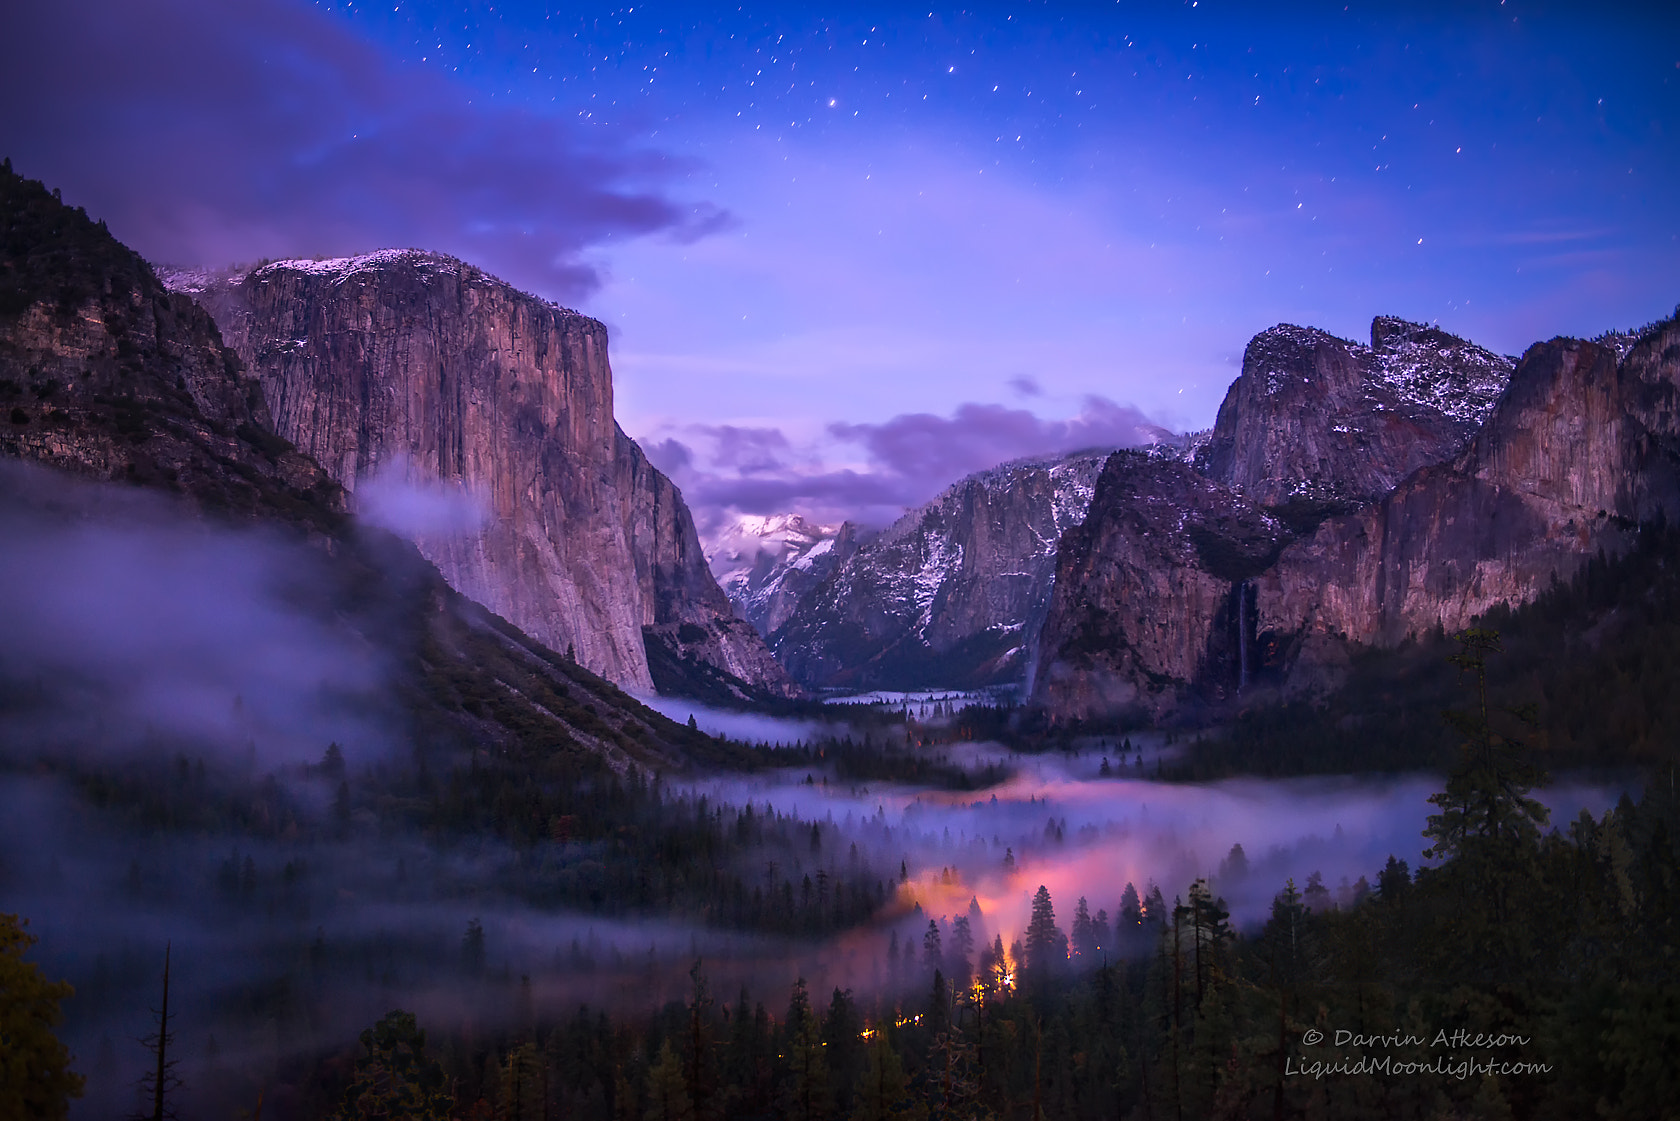 Photograph Yosemite Valley - Twilight Fog by Darvin Atkeson on 500px